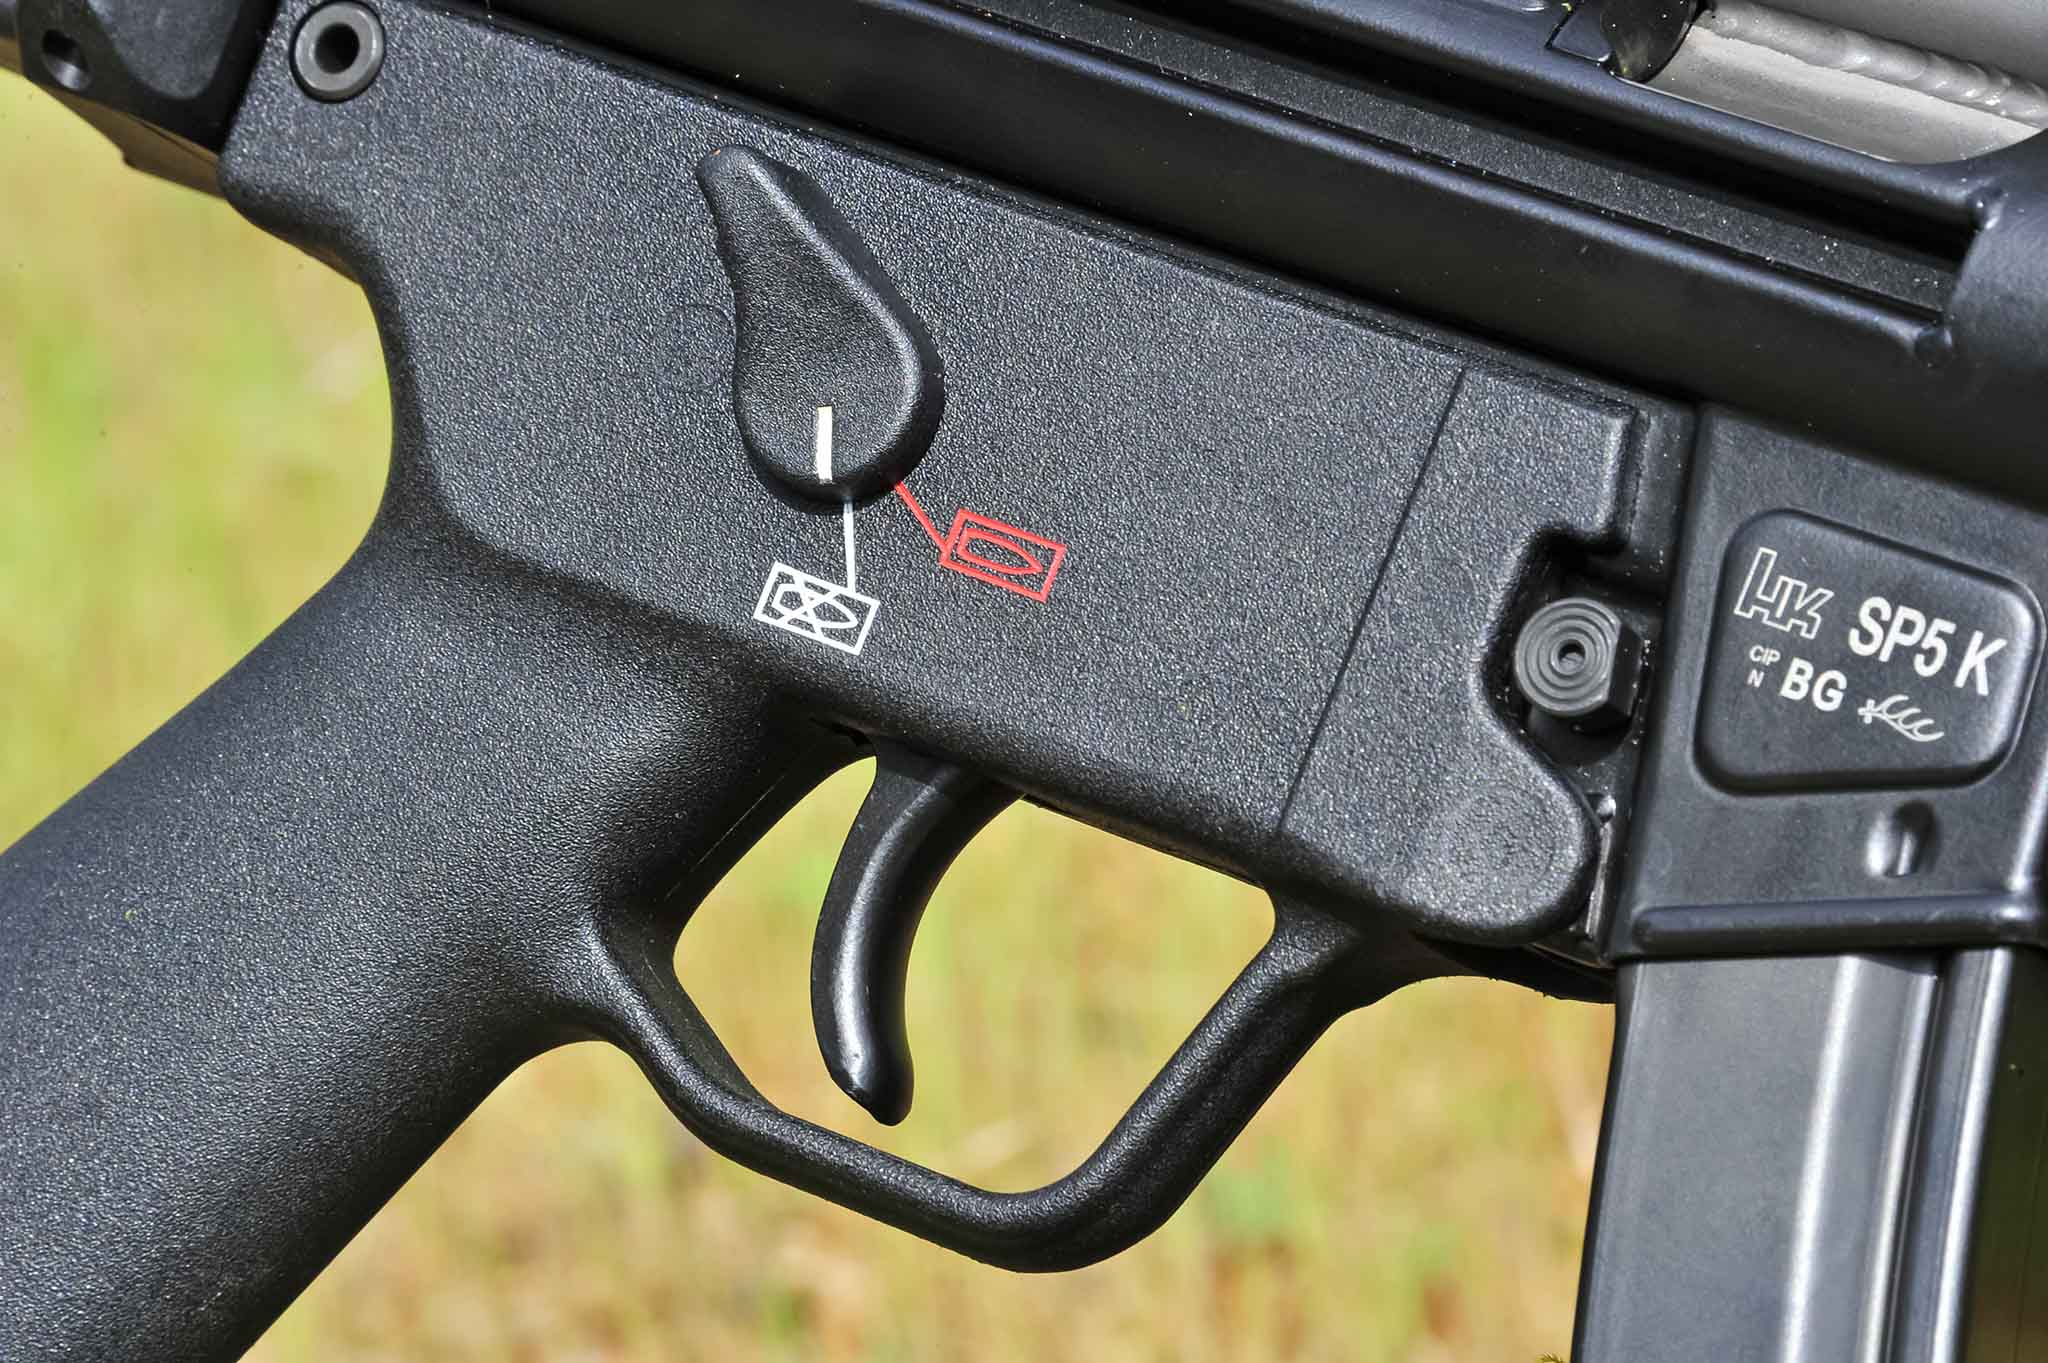 Manual two-position safety switch on the Heckler & Koch SP5K pistol